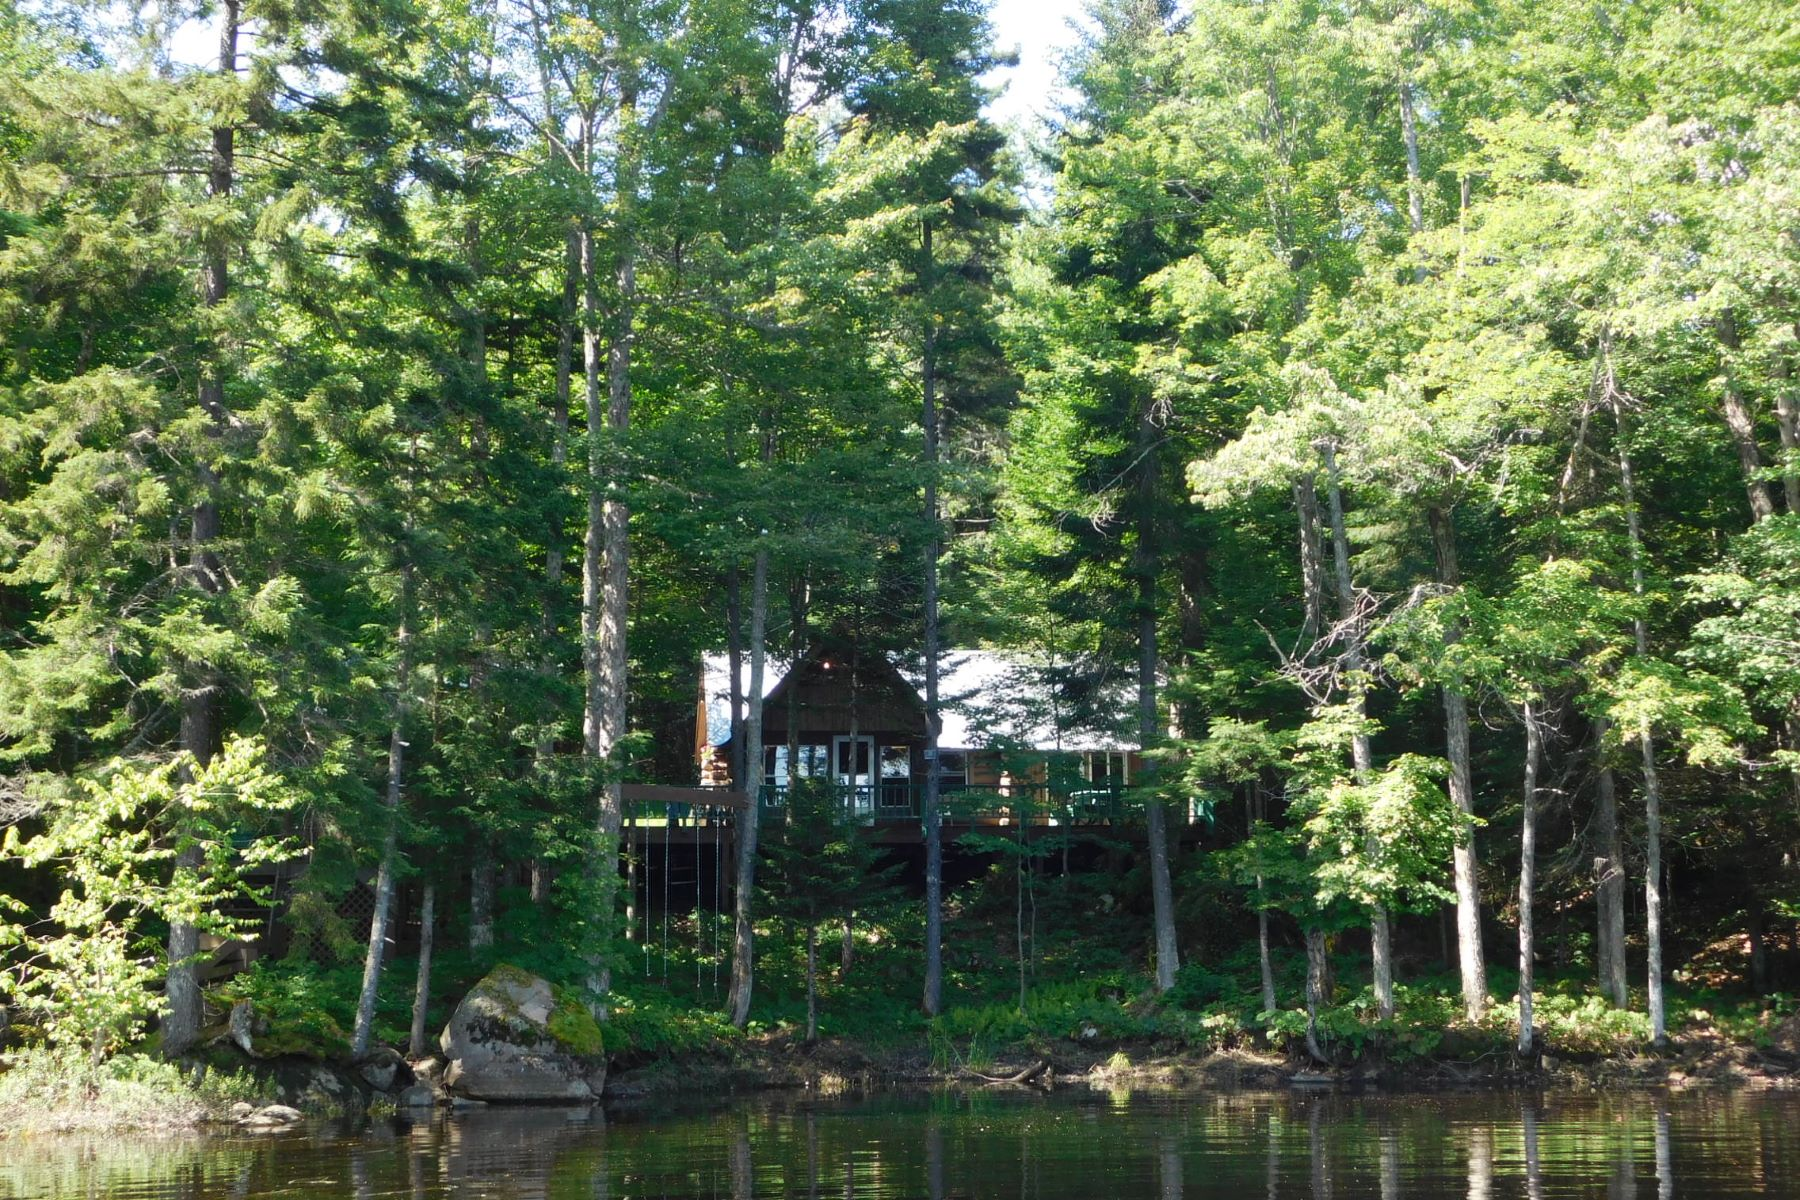 Частный односемейный дом для того Продажа на Secluded Cabin and 32 acres with unparalleled views of Stillwater Reservoir 3960 Big Moose Rd Big Moose, Нью-Йорк 13331 Соединенные Штаты